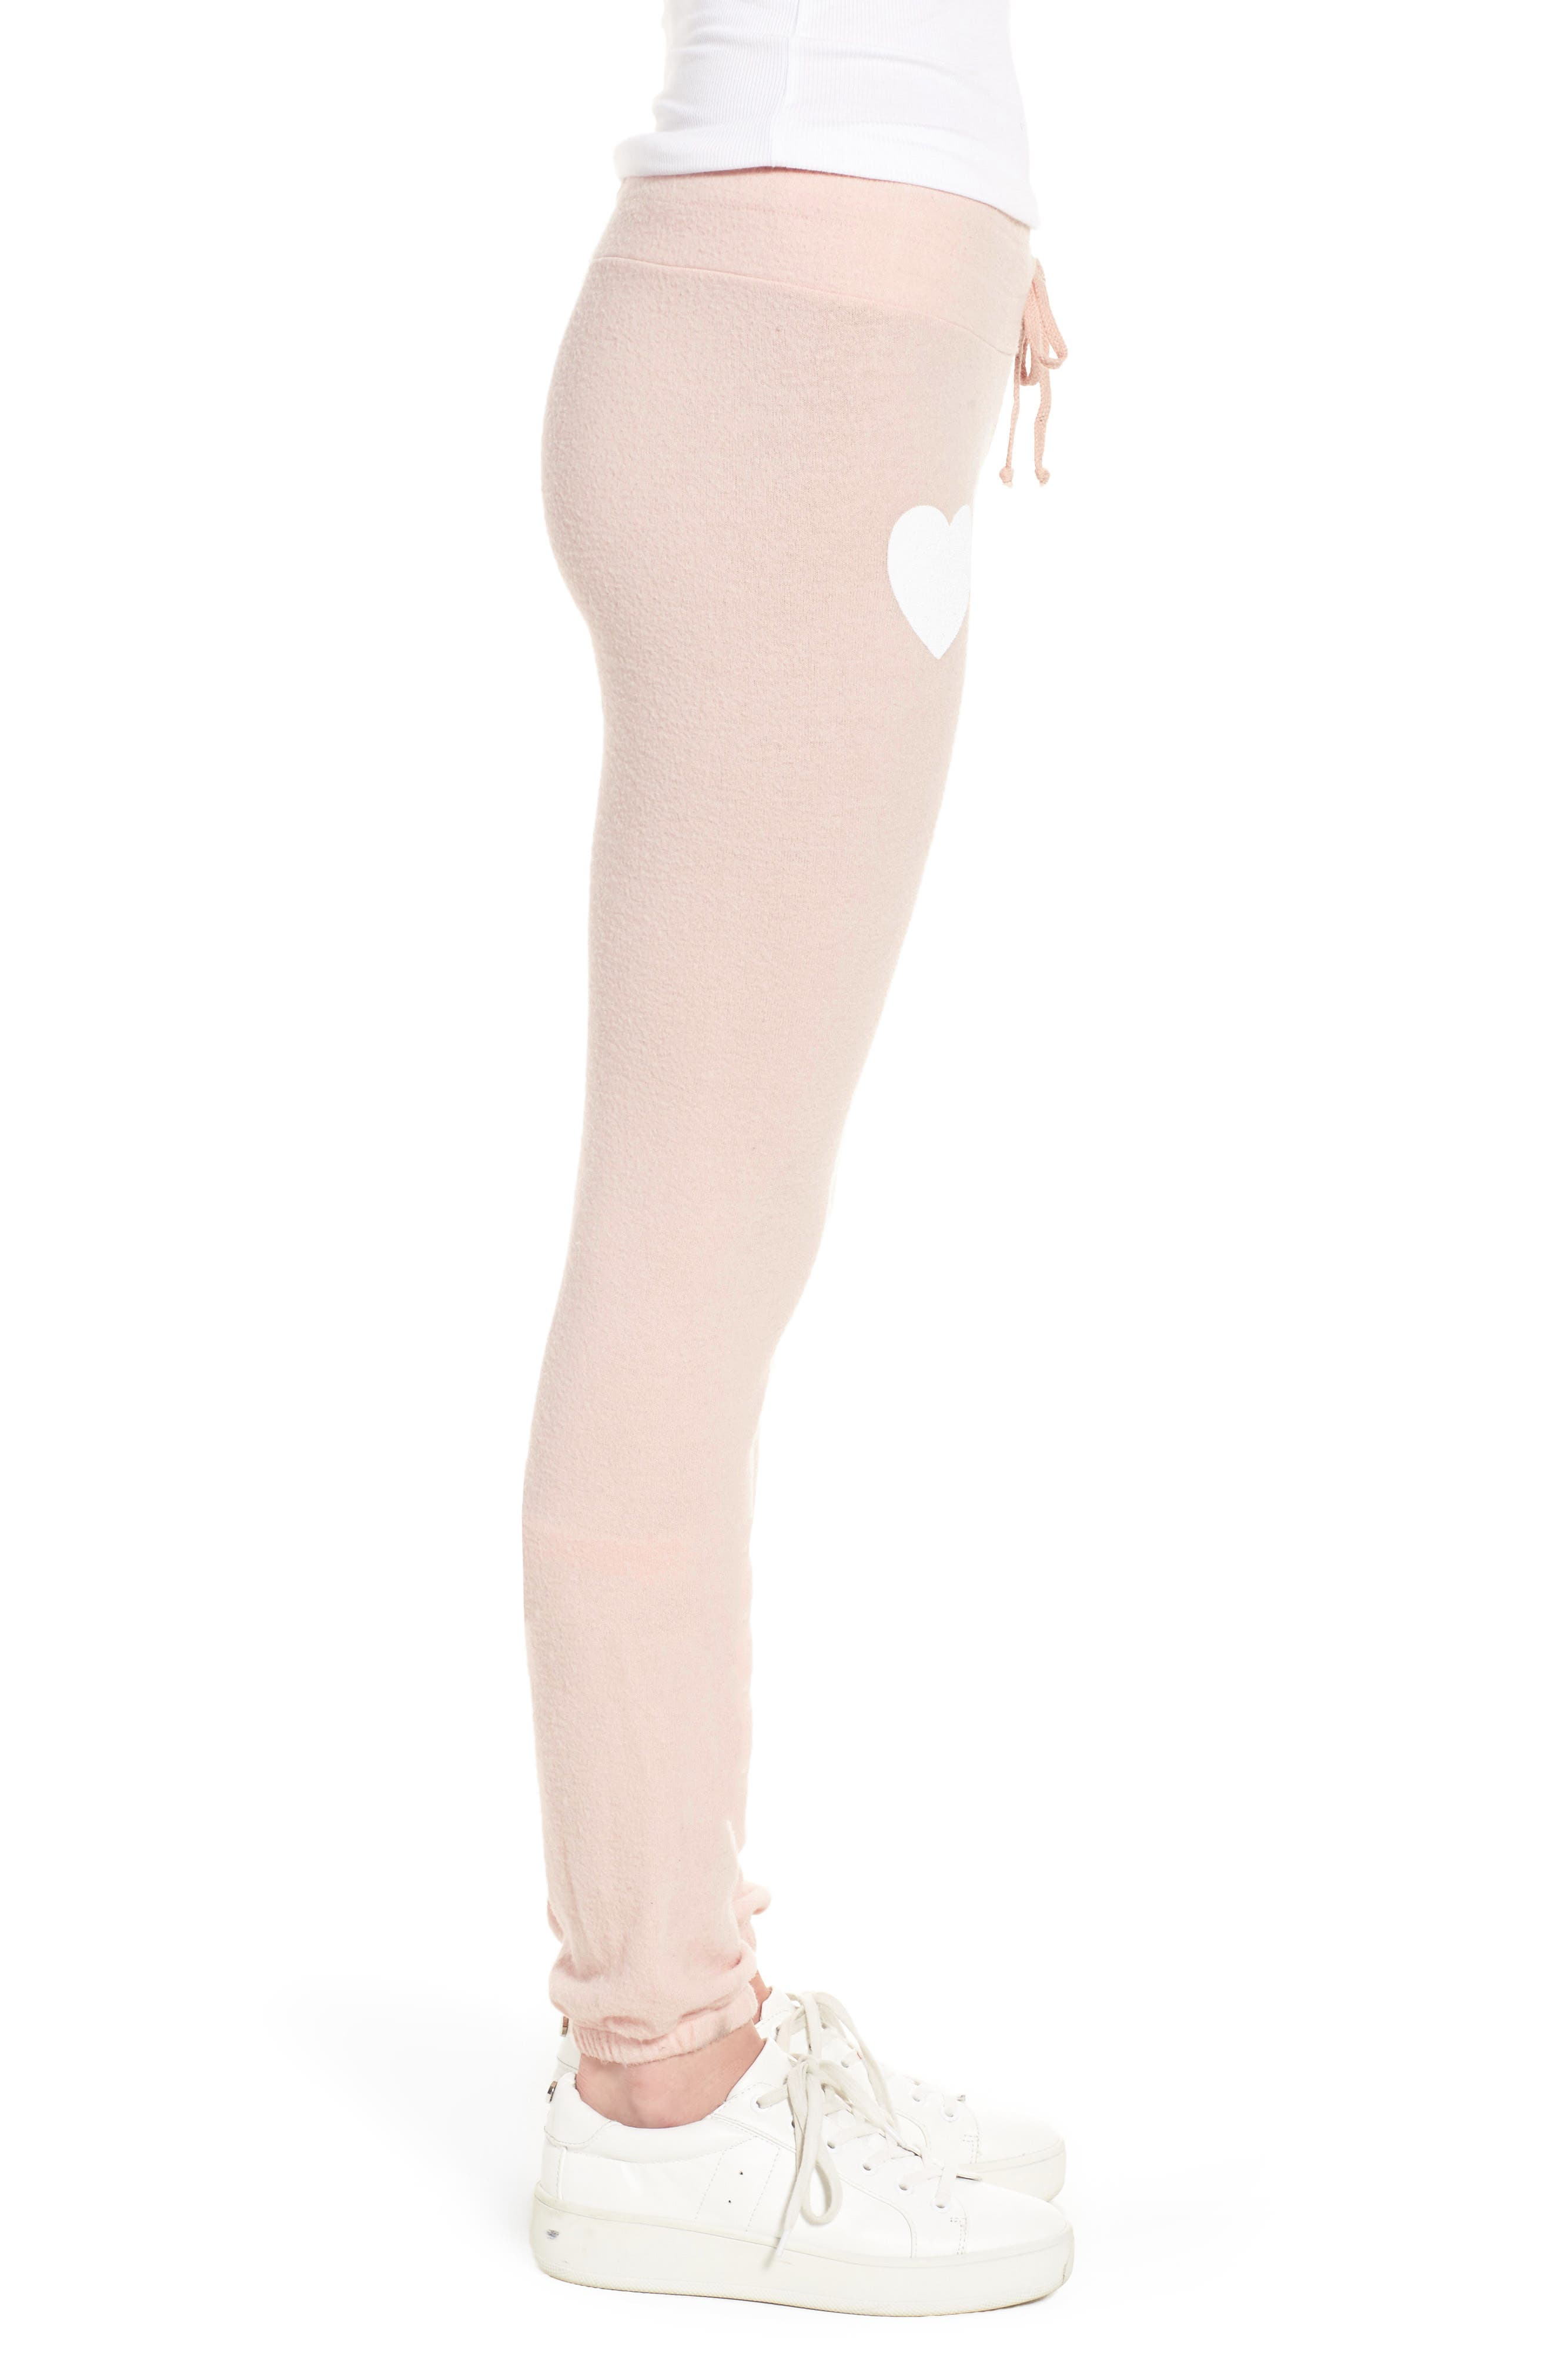 Rosé All Day Skinny Pants,                             Alternate thumbnail 4, color,                             Rose